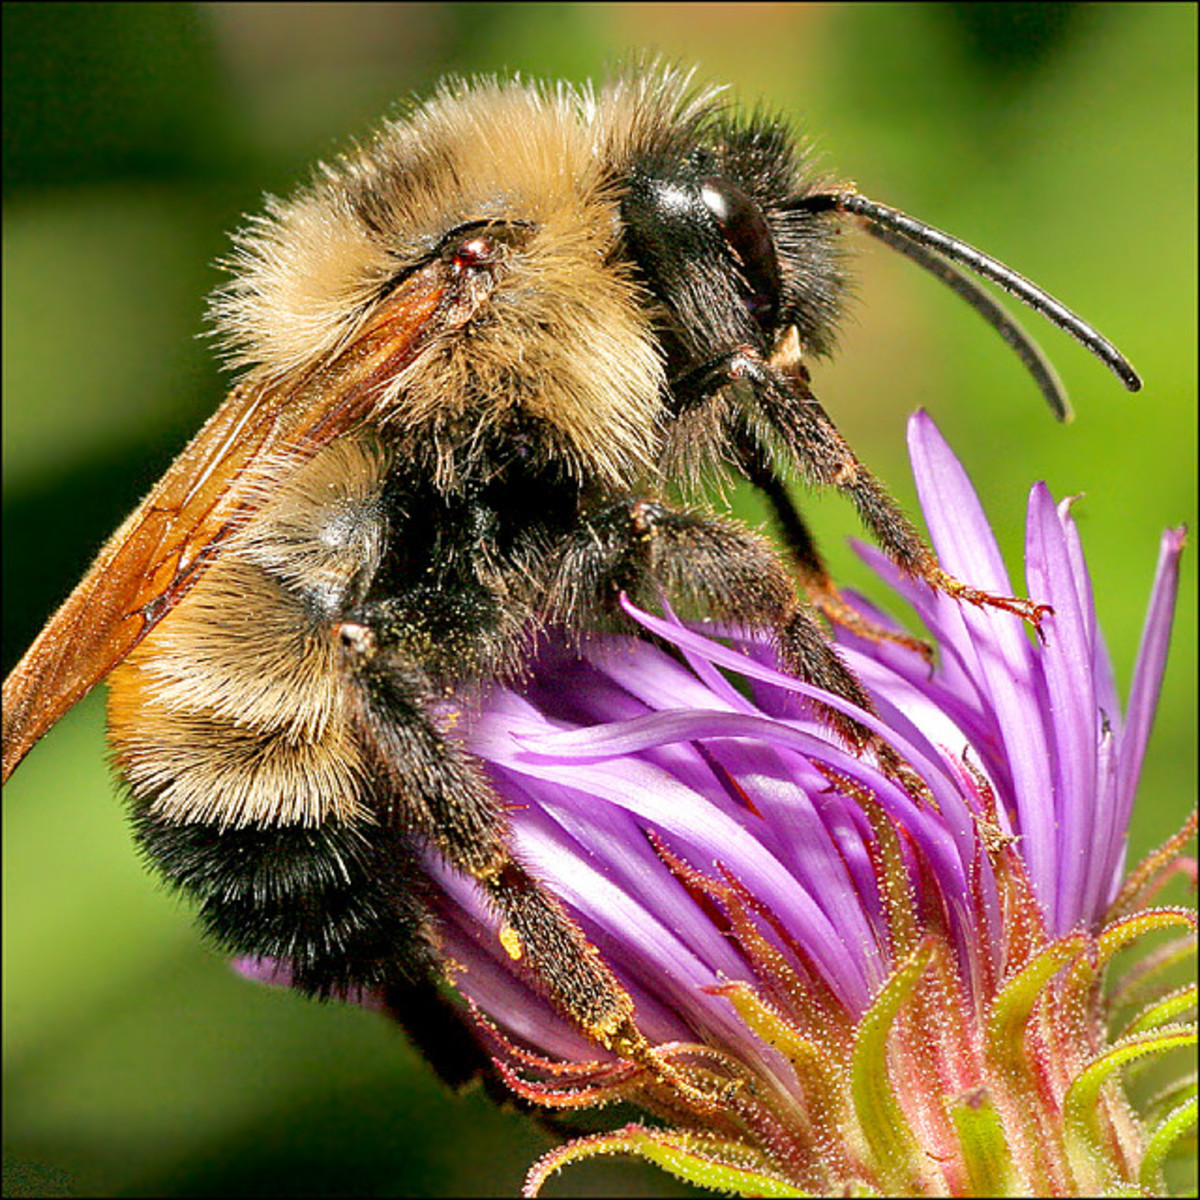 This honeybee will lay down his life for his hive's sake.